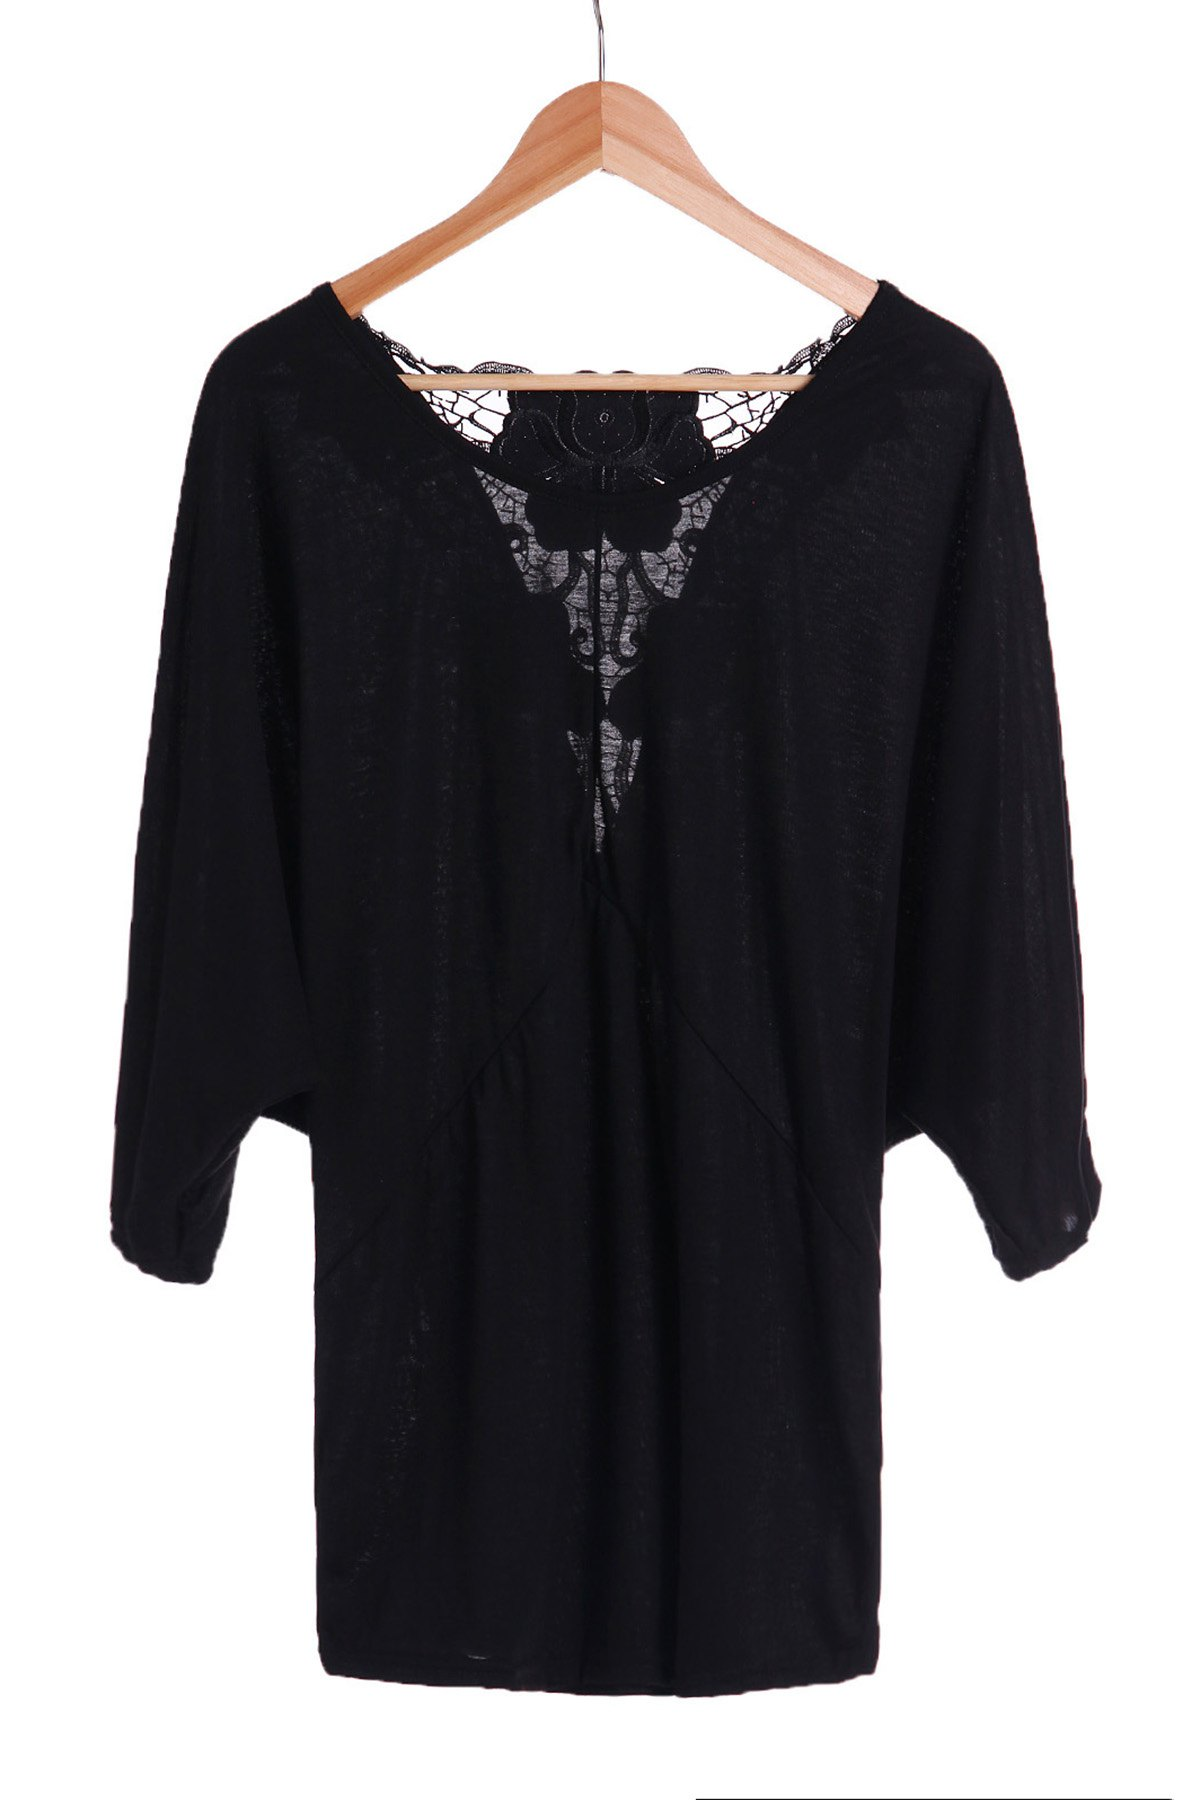 Trendy Backless Lace Spliced Batwing Sleeve Black Blouse For Women - BLACK ONE SIZE(FIT SIZE XS TO M)